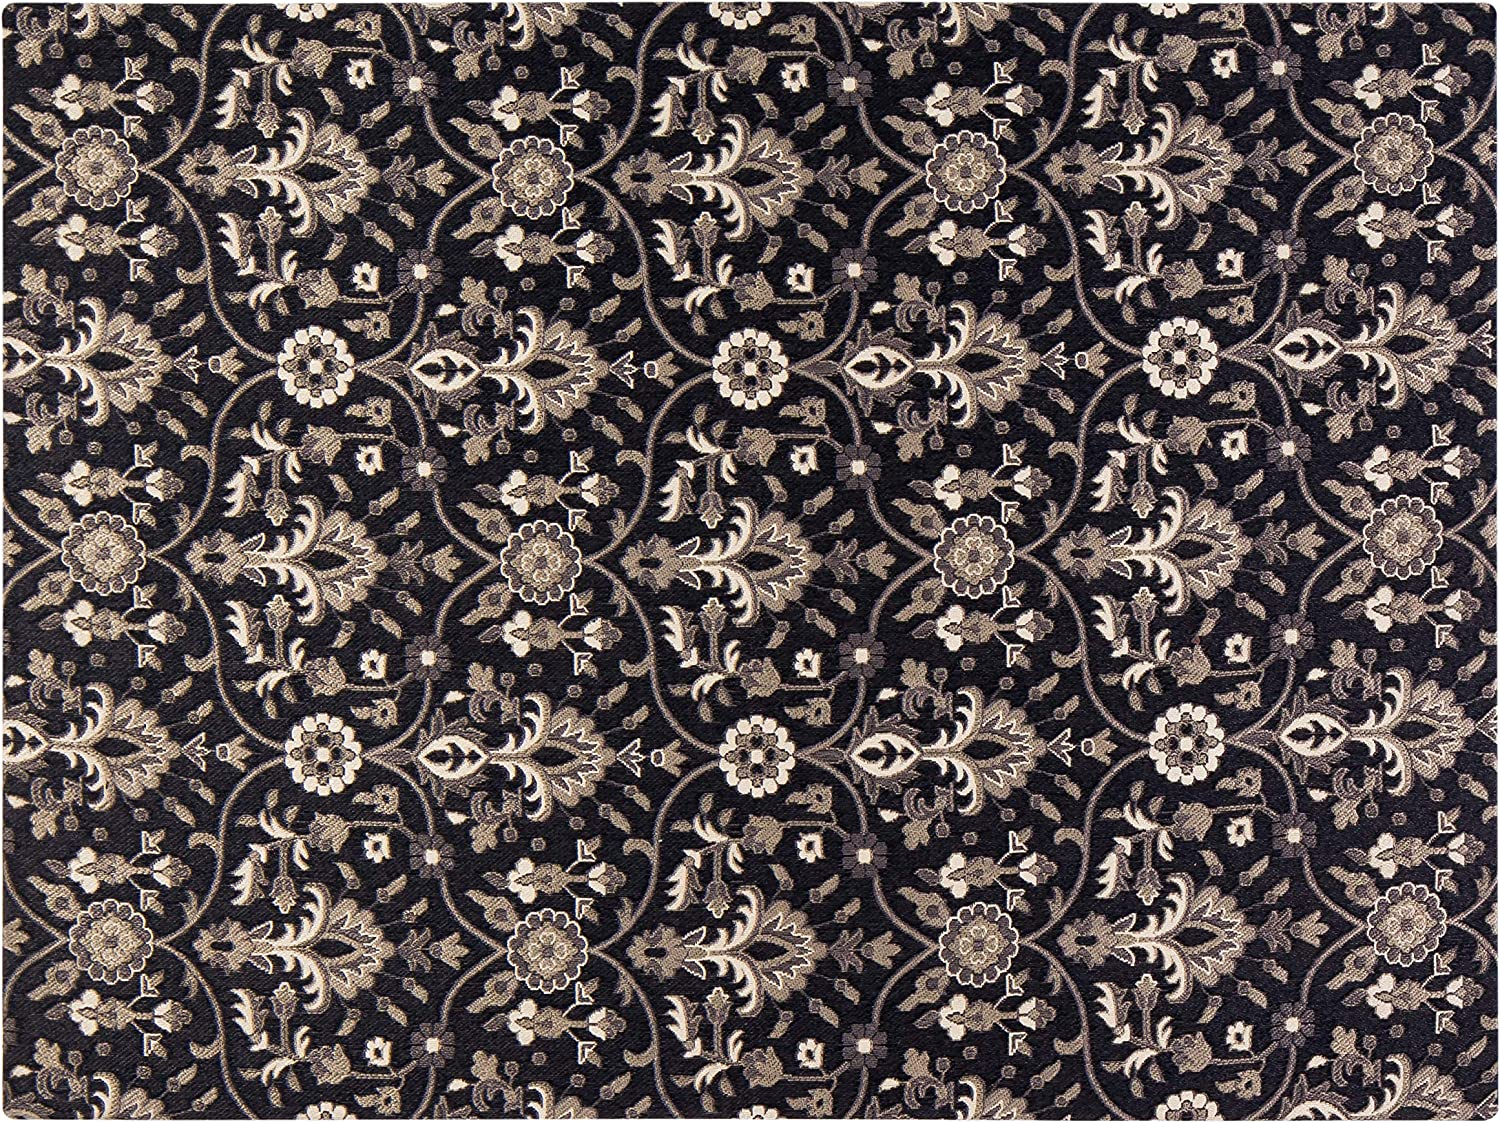 Anji Mountain Chair Mat Rug d Collection, 1 4 Thick – For Low Pile Carpets Hard Surfaces, Alhambra , Black Floral Print